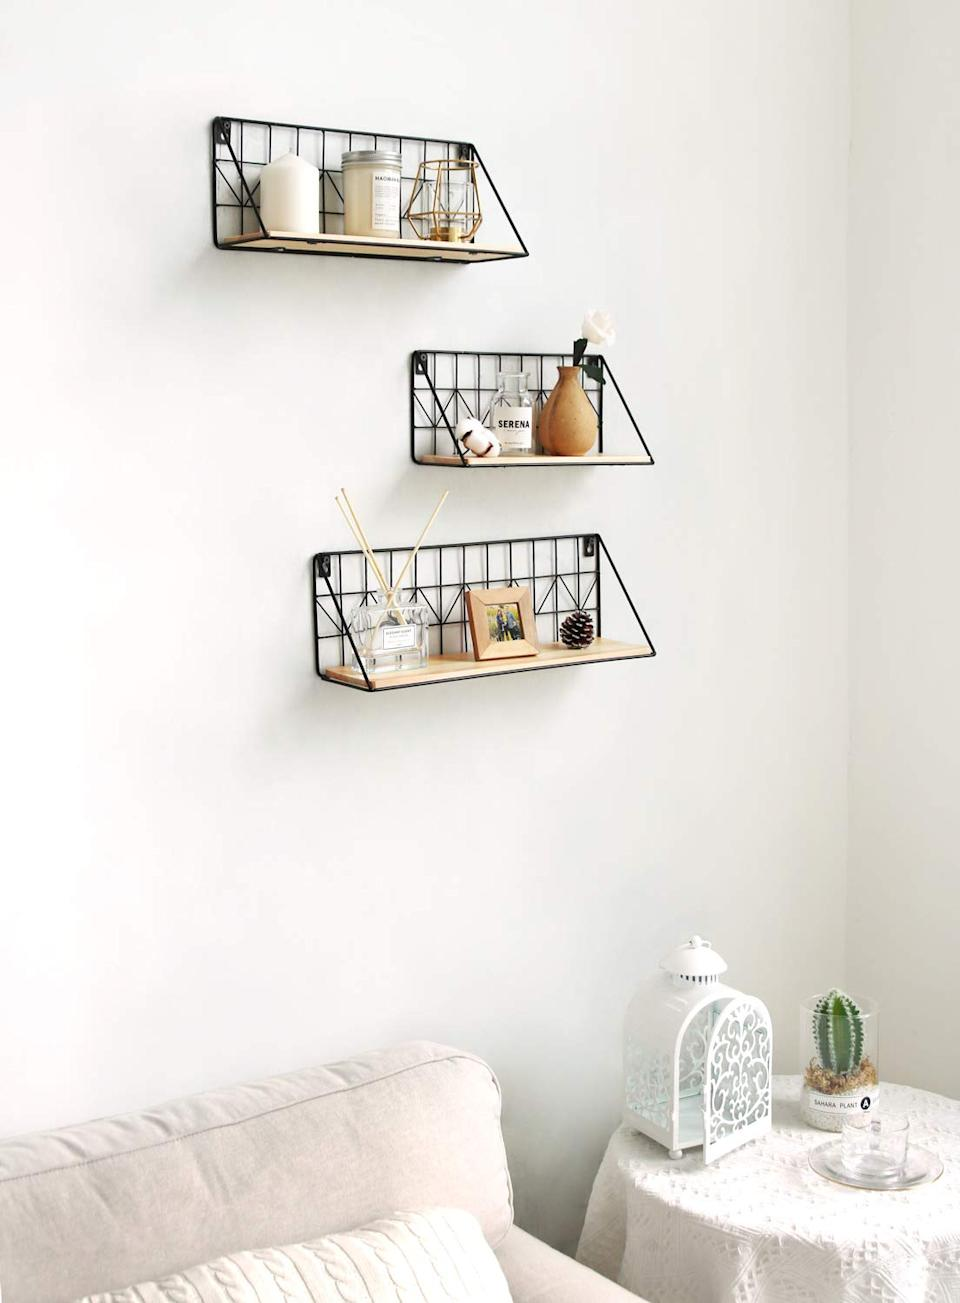 """<h3><a href=""""https://www.amazon.com/Mkono-Mounted-Floating-Shelves-Storage/dp/B07RLBPT52/ref=sr_1_8"""" rel=""""nofollow noopener"""" target=""""_blank"""" data-ylk=""""slk:Metal & Wood Floating Shelf Trio"""" class=""""link rapid-noclick-resp"""">Metal & Wood Floating Shelf Trio</a> </h3><br>Whether you use this shelving trio to display decor or house everyday basics (like beauty products or entryway essentials), its cluster and wall-mountable structures are stylish floor-space saviors.<br><br><strong>Mkono</strong> Wall Mounted Floating Shelves Set of 3, $, available at <a href=""""https://www.amazon.com/Mkono-Mounted-Floating-Shelves-Storage/dp/B07RLBPT52/ref=sr_1_8"""" rel=""""nofollow noopener"""" target=""""_blank"""" data-ylk=""""slk:Amazon"""" class=""""link rapid-noclick-resp"""">Amazon</a>"""